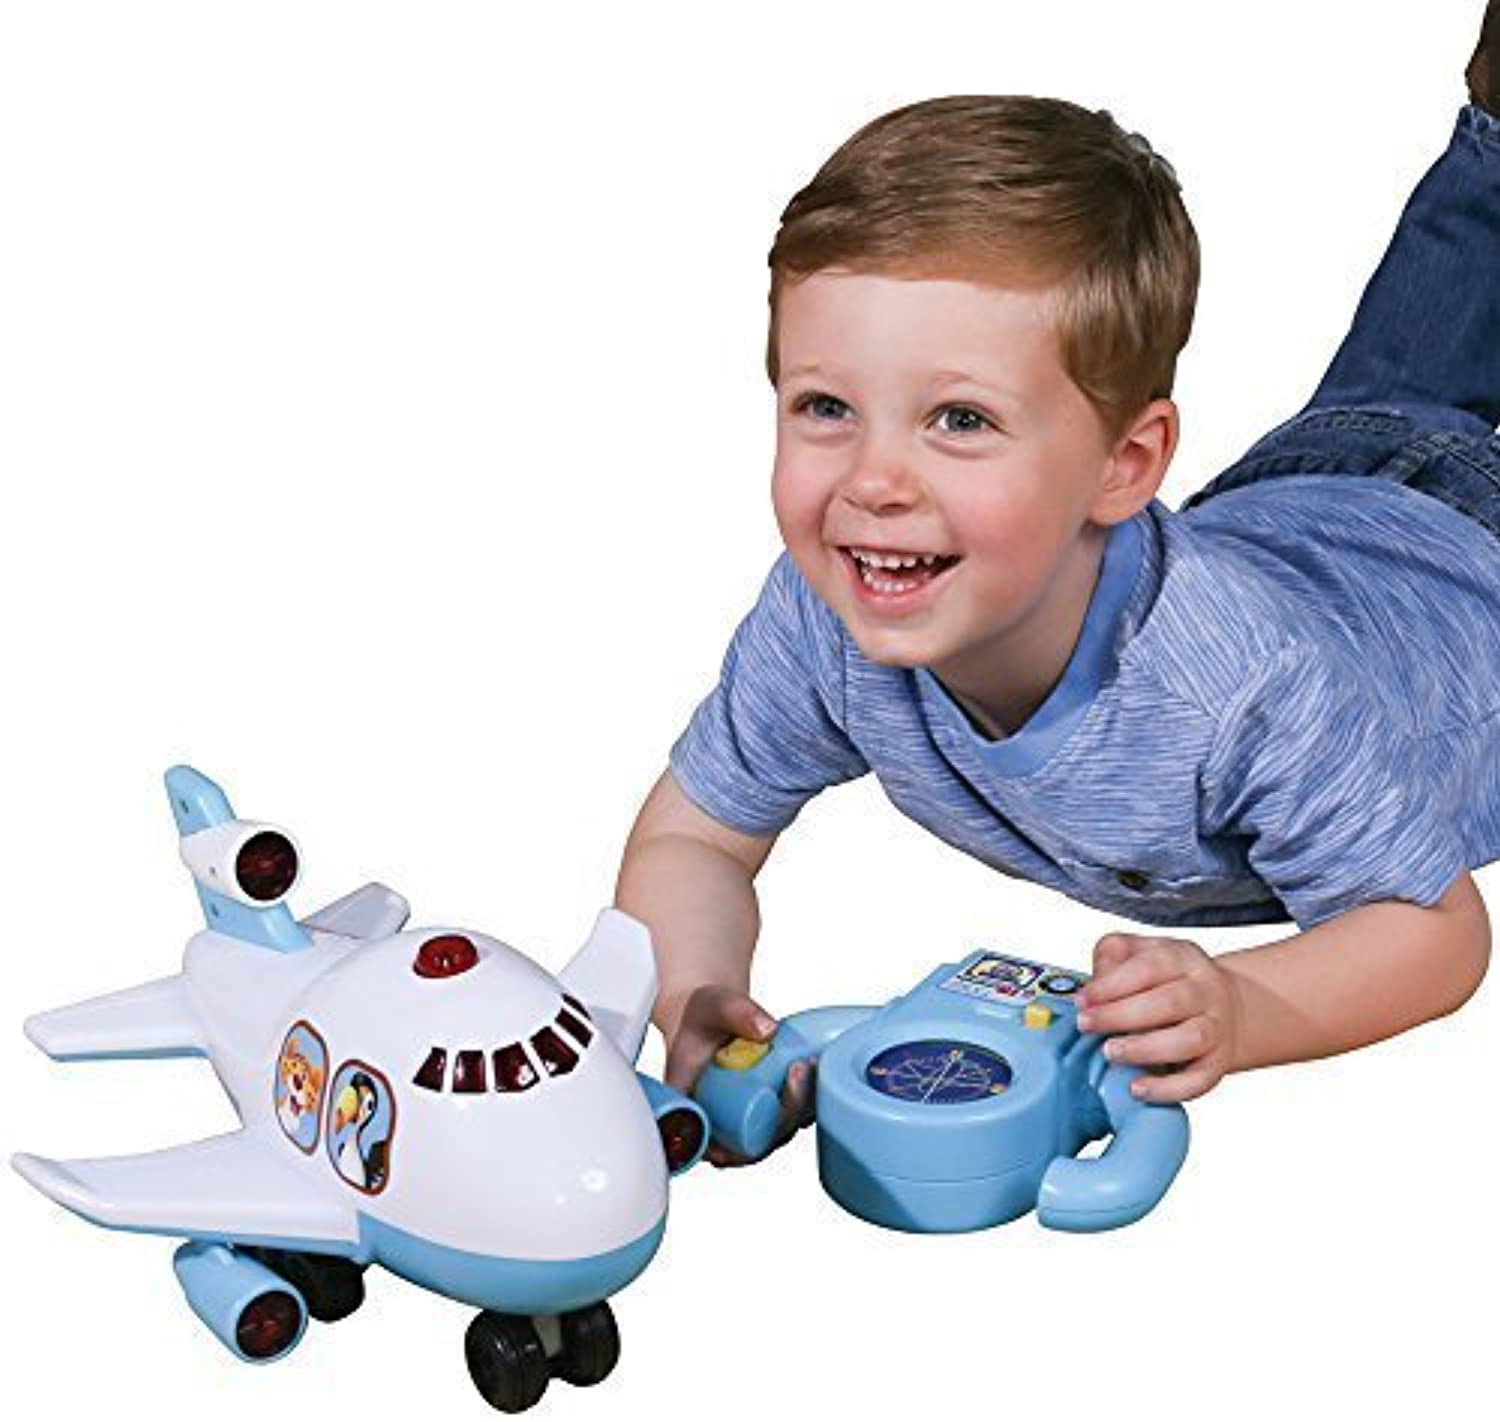 ahorra hasta un 30-50% de descuento CP CP CP Juguetes First Remote-Controlled Jumbo Jet with Flashing Lights and Music by Constructive Jugarthings  precios ultra bajos